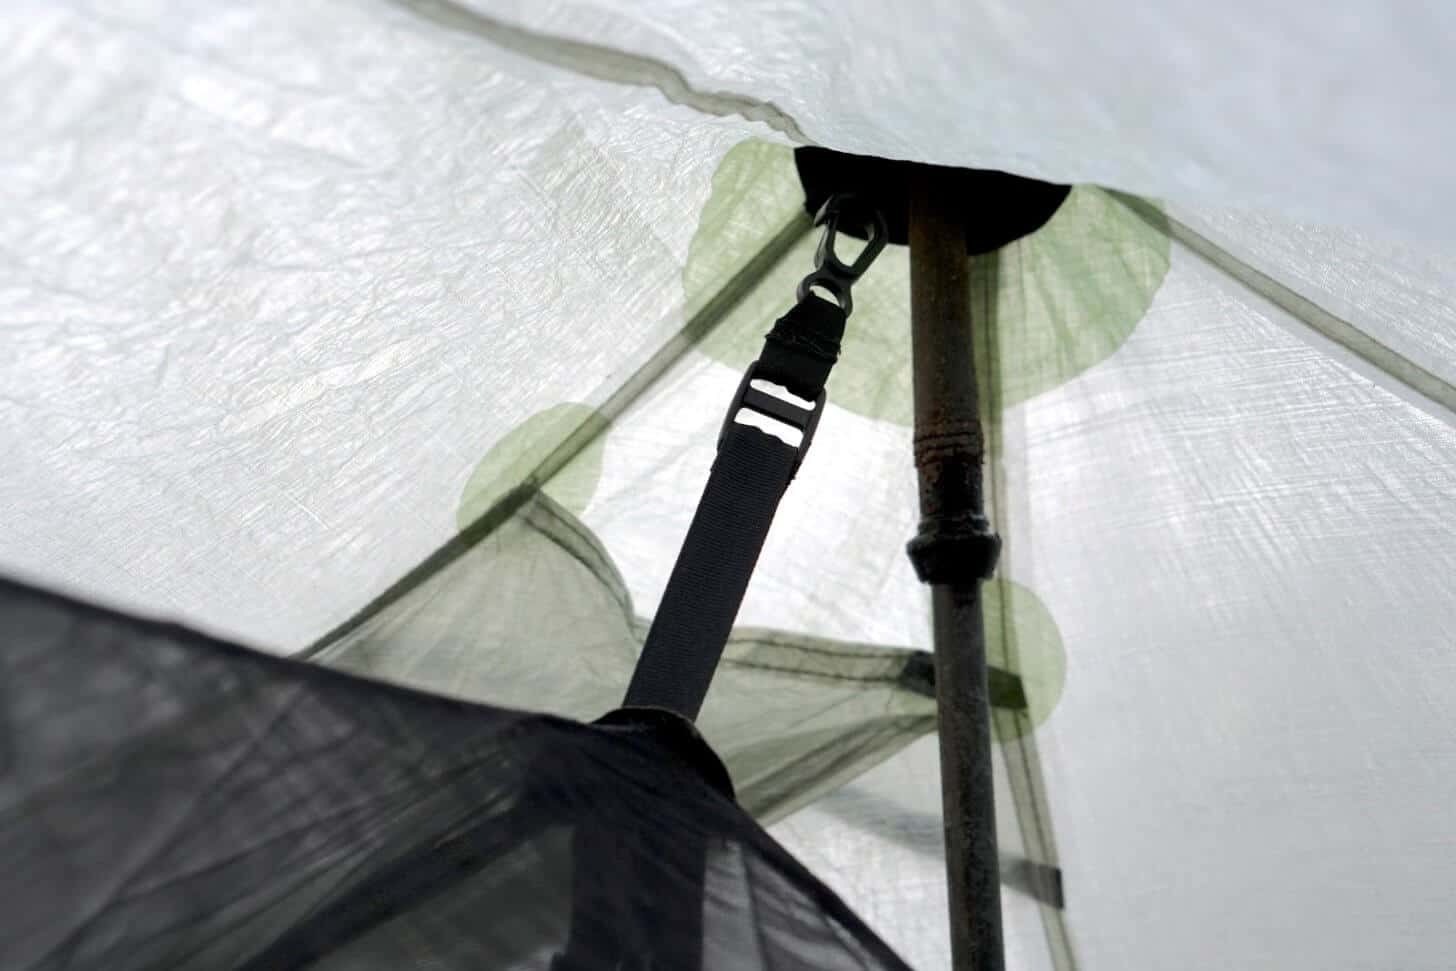 tarptent notch li seam bonding durability quality